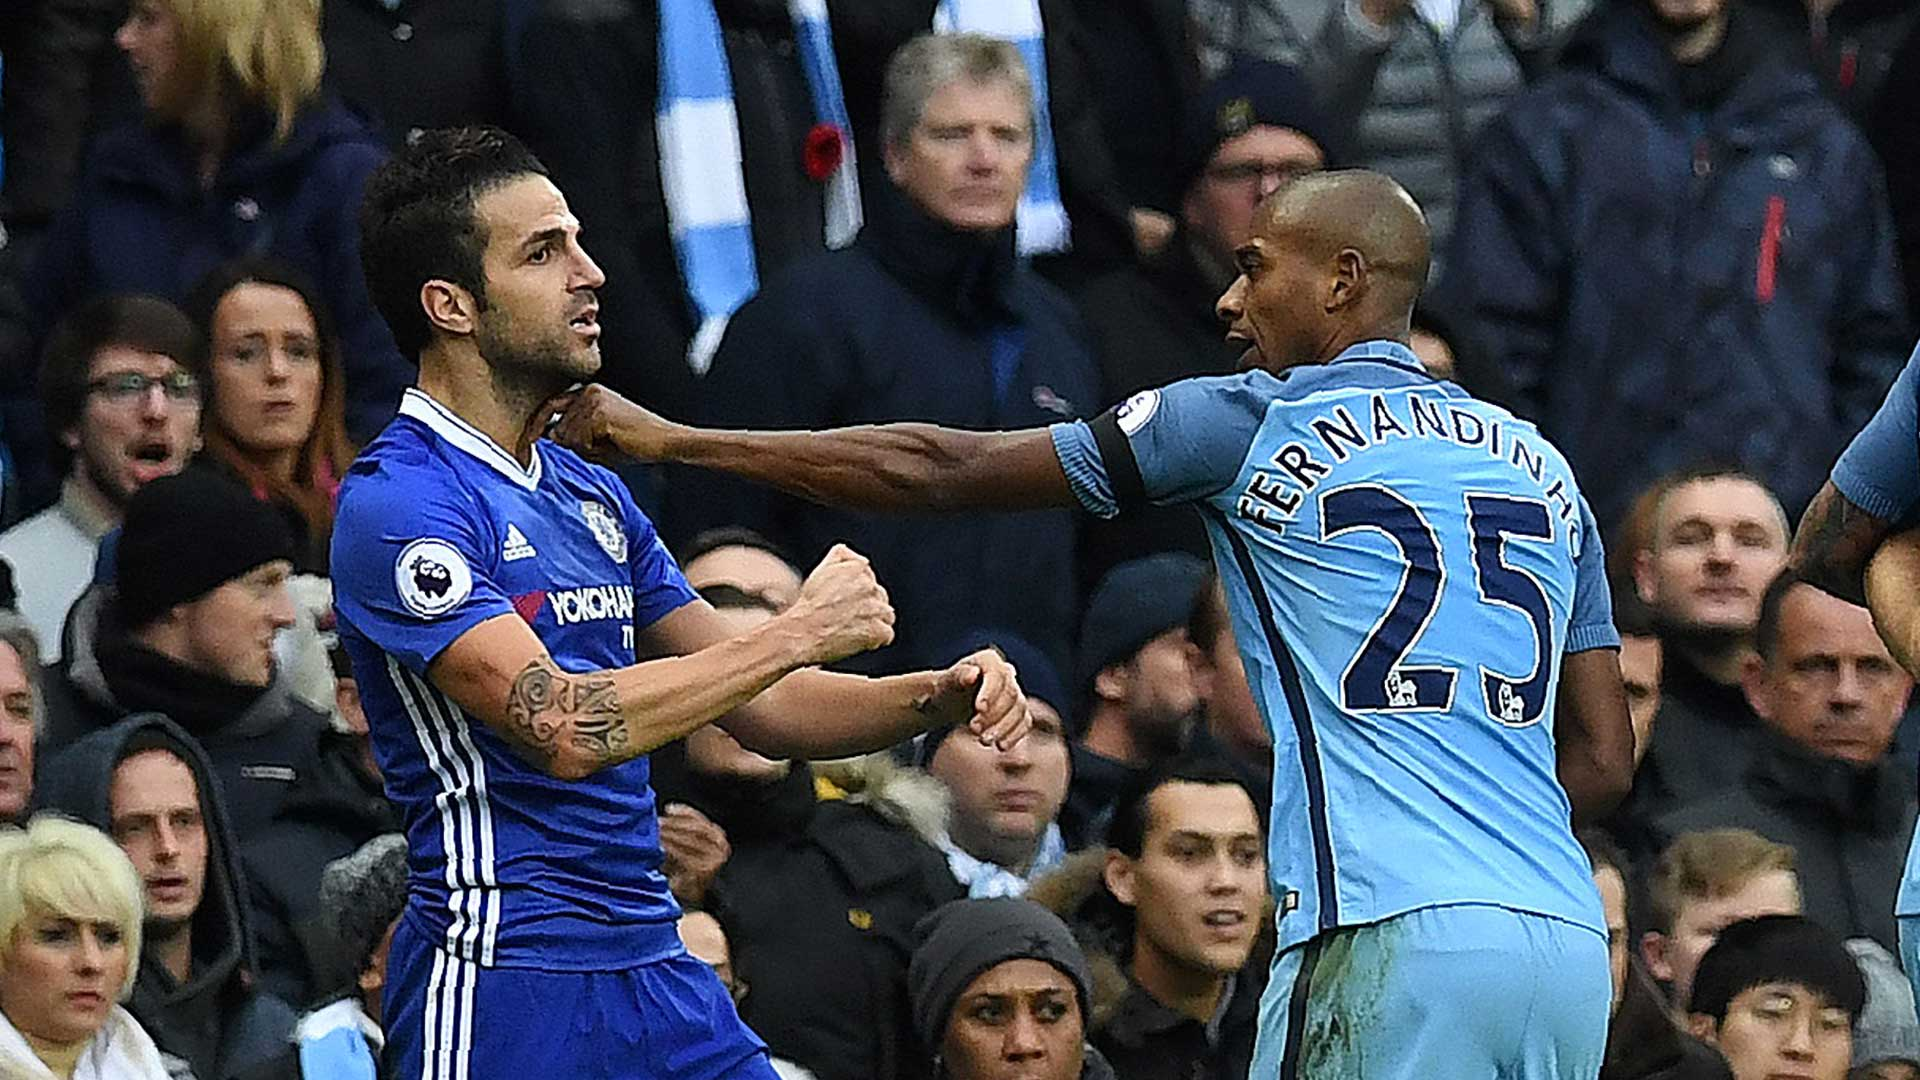 FA To Start Probe In Manchester City Chelsea 30 Man Brawl